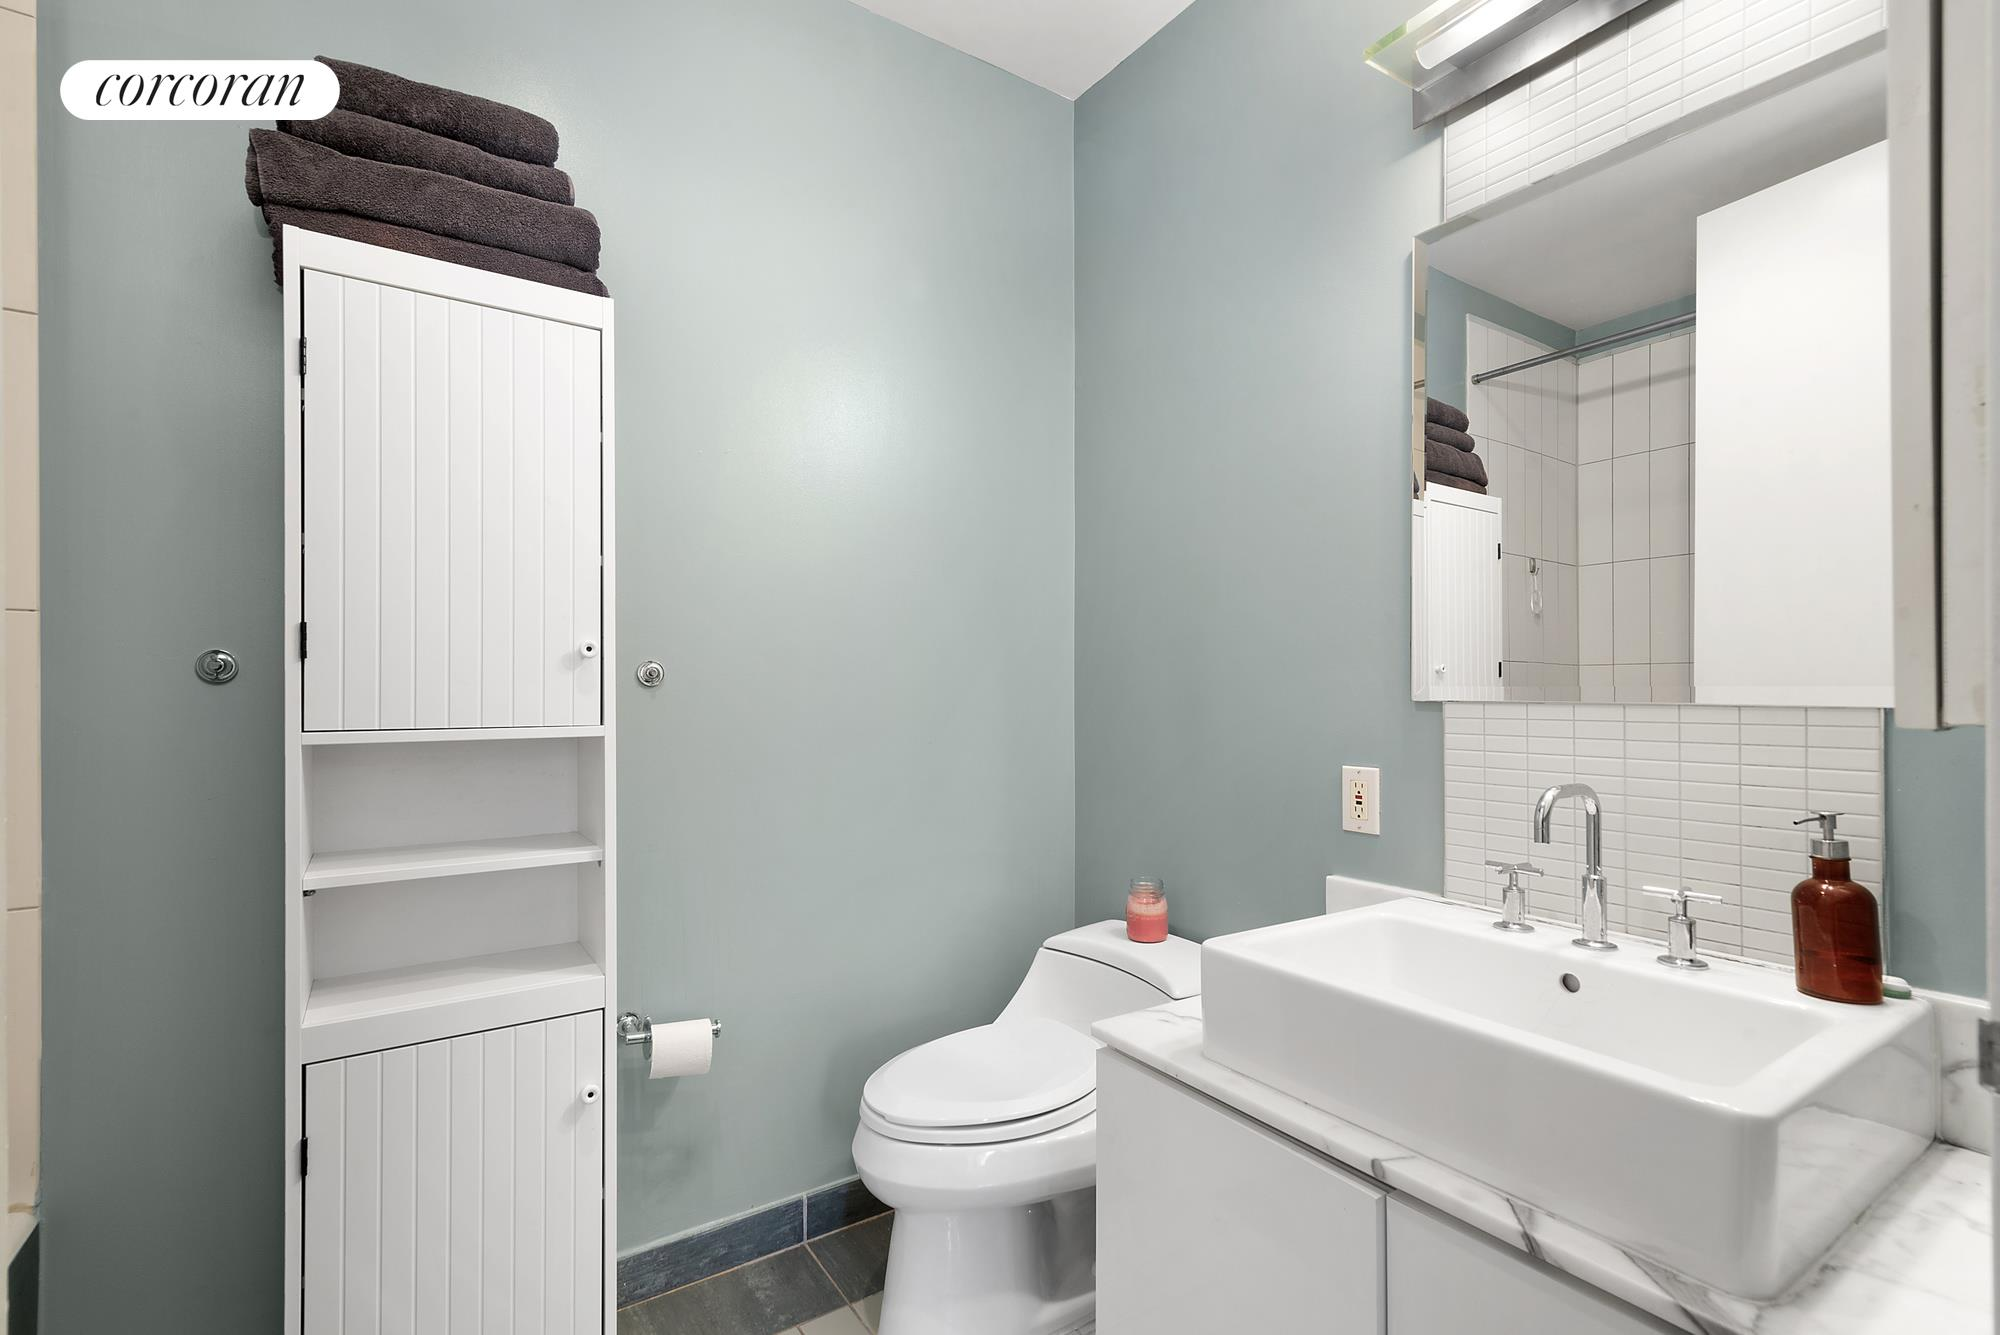 Apartment for sale at 48-21 5th Street, Apt 2A